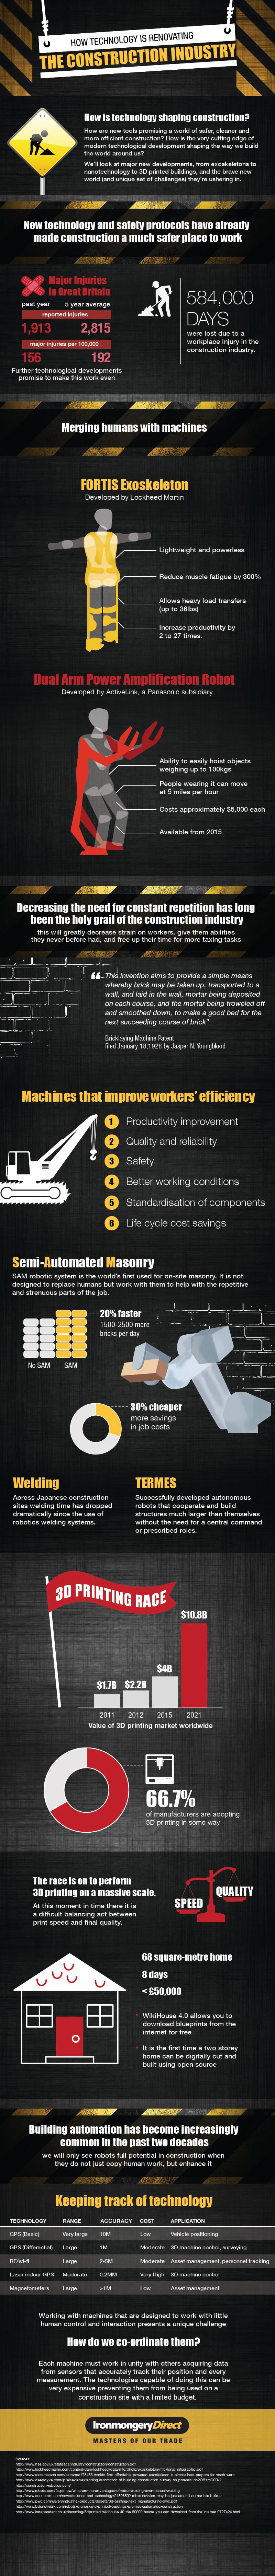 How technology is renovating the construction industry-infographic